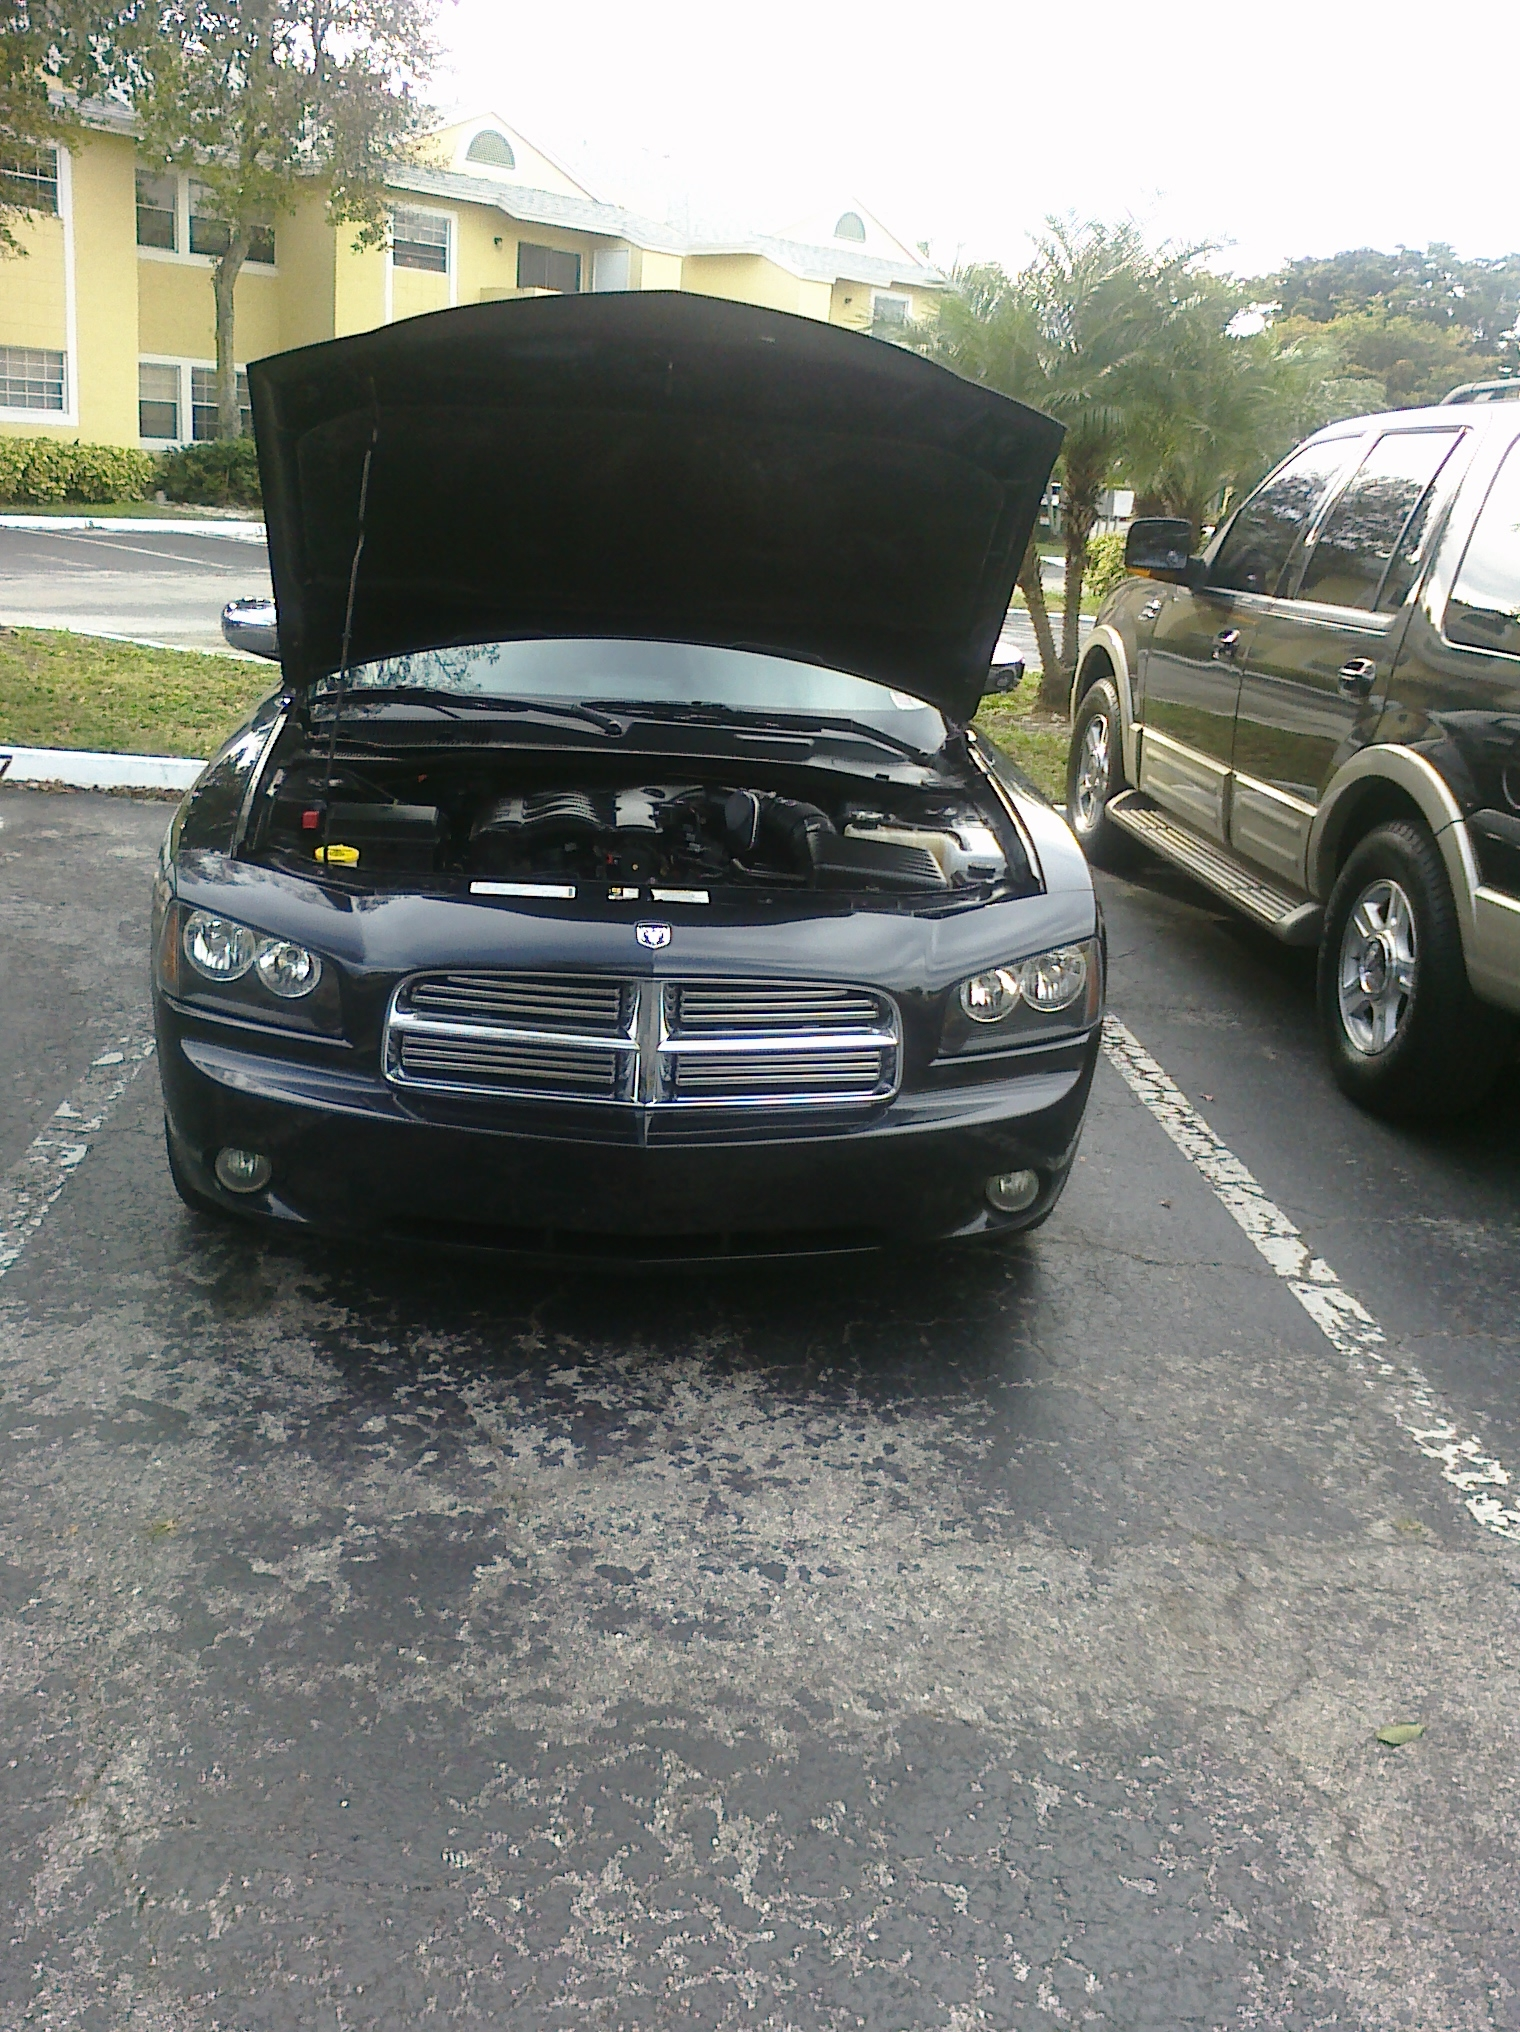 lurchjr 2009 Dodge Charger 14265378